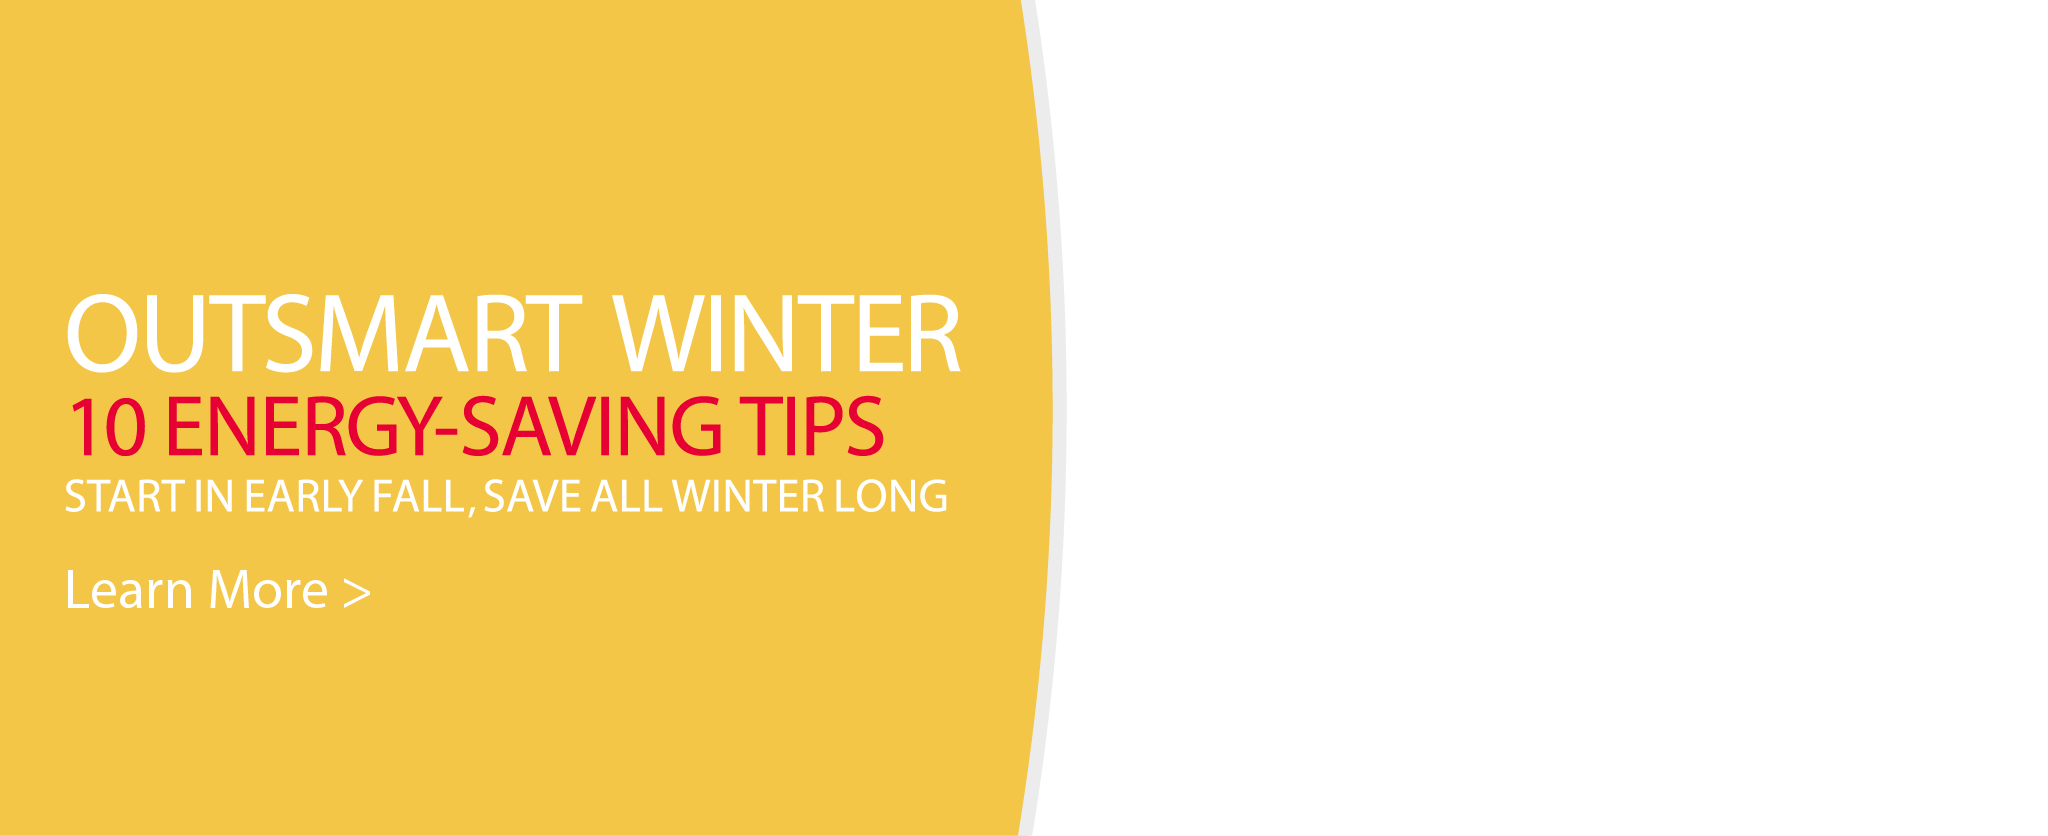 energy-savings-tips-winter